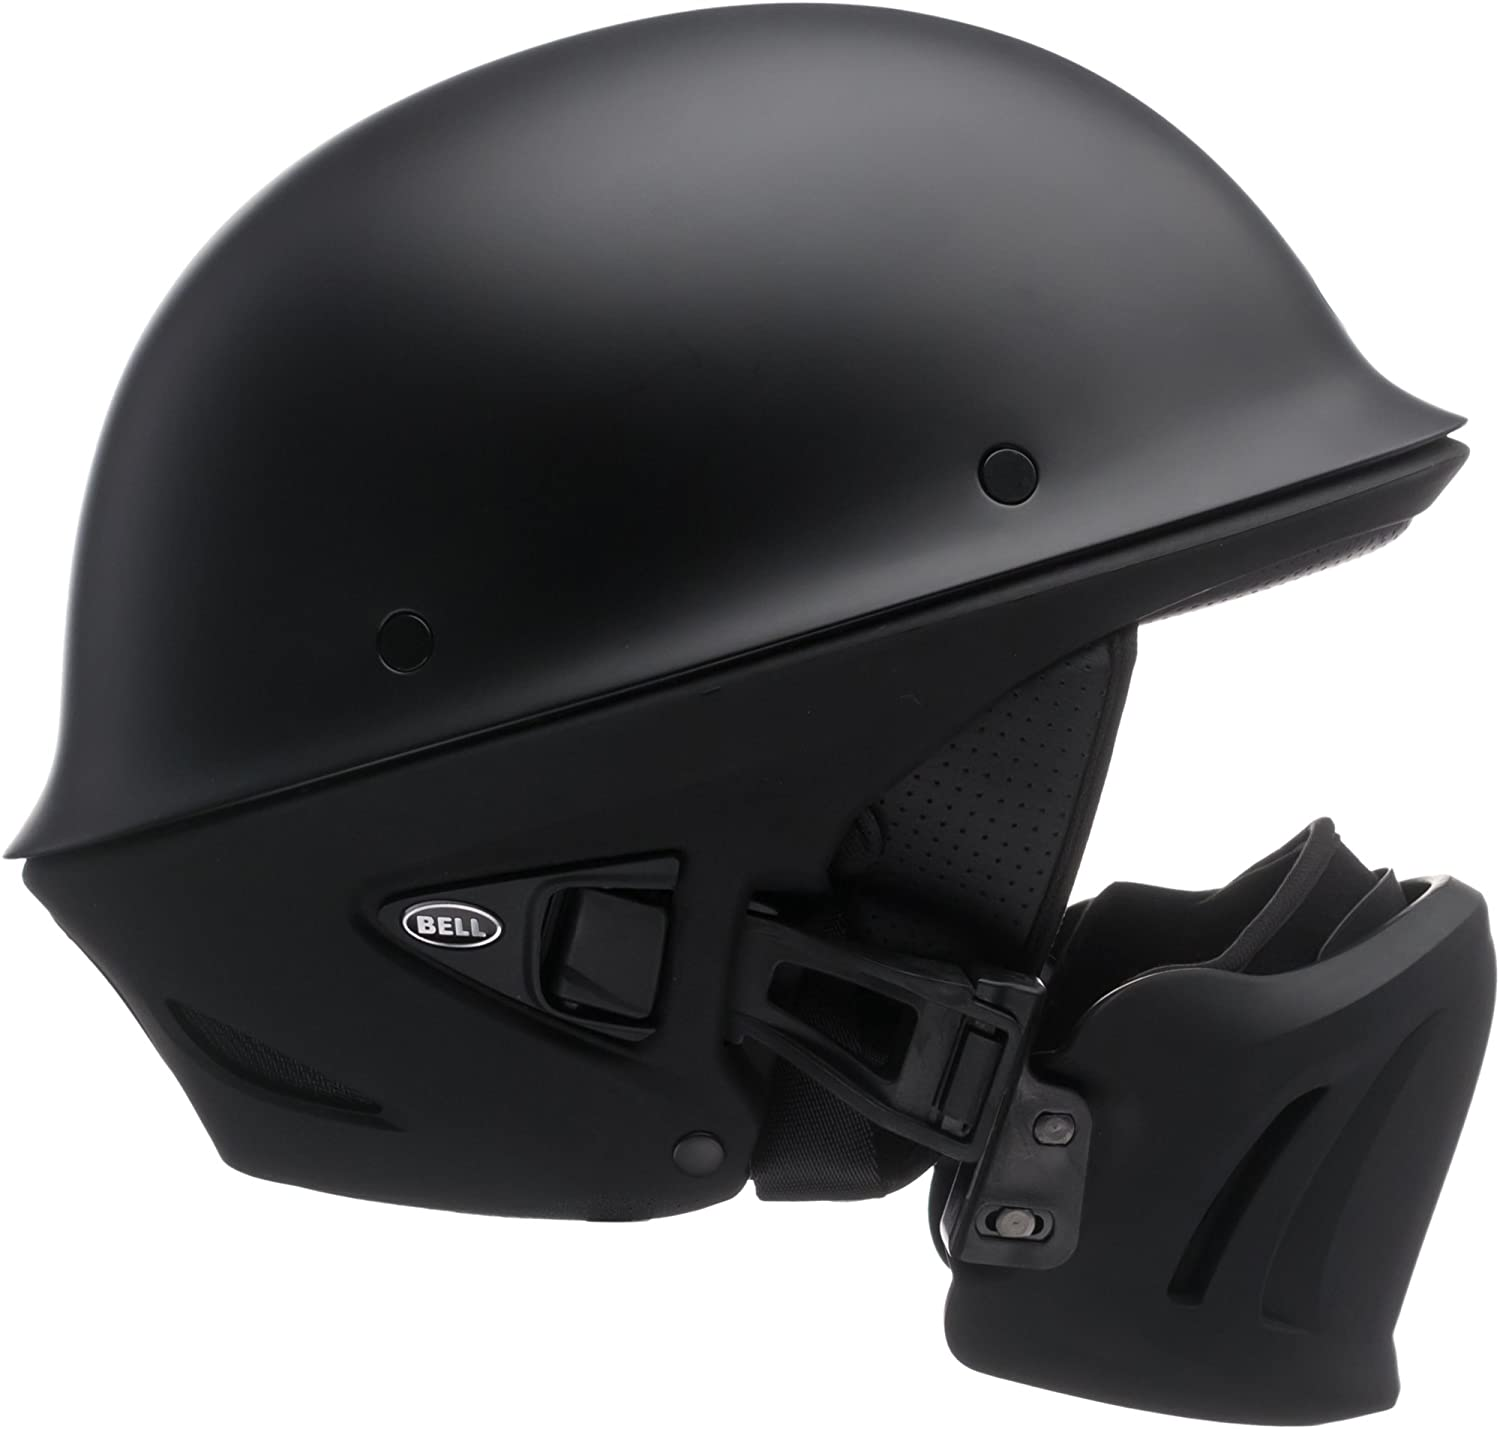 Bell Motorcycle Helmet >> Amazon Com Bell Rogue Half Size Motorcycle Helmet Solid Matte